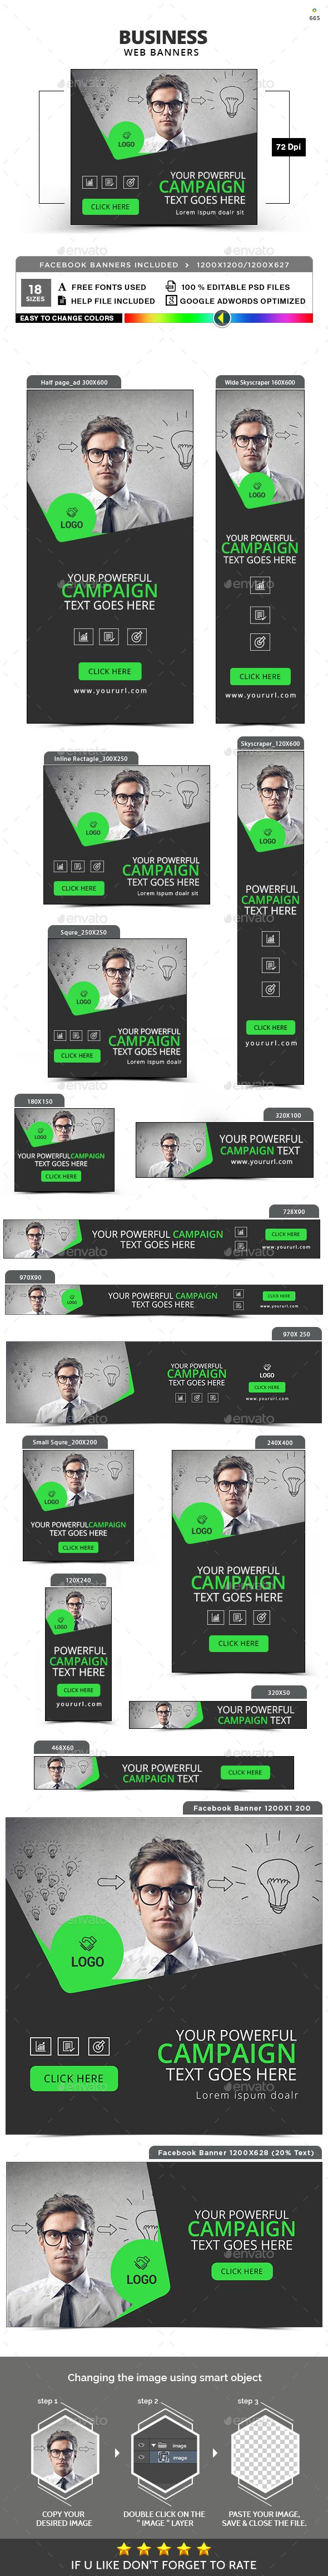 Promote your Products and services with this great looking Banner Set. 18 awesome quality banner template PSD files, including Facebook ad sizes, ready for your Services, products, campaigns.Each PSD files are layered and fully organized. You can use this banners for google adwords & Adroll too. ( All google adwords, Adroll banner sizes included)